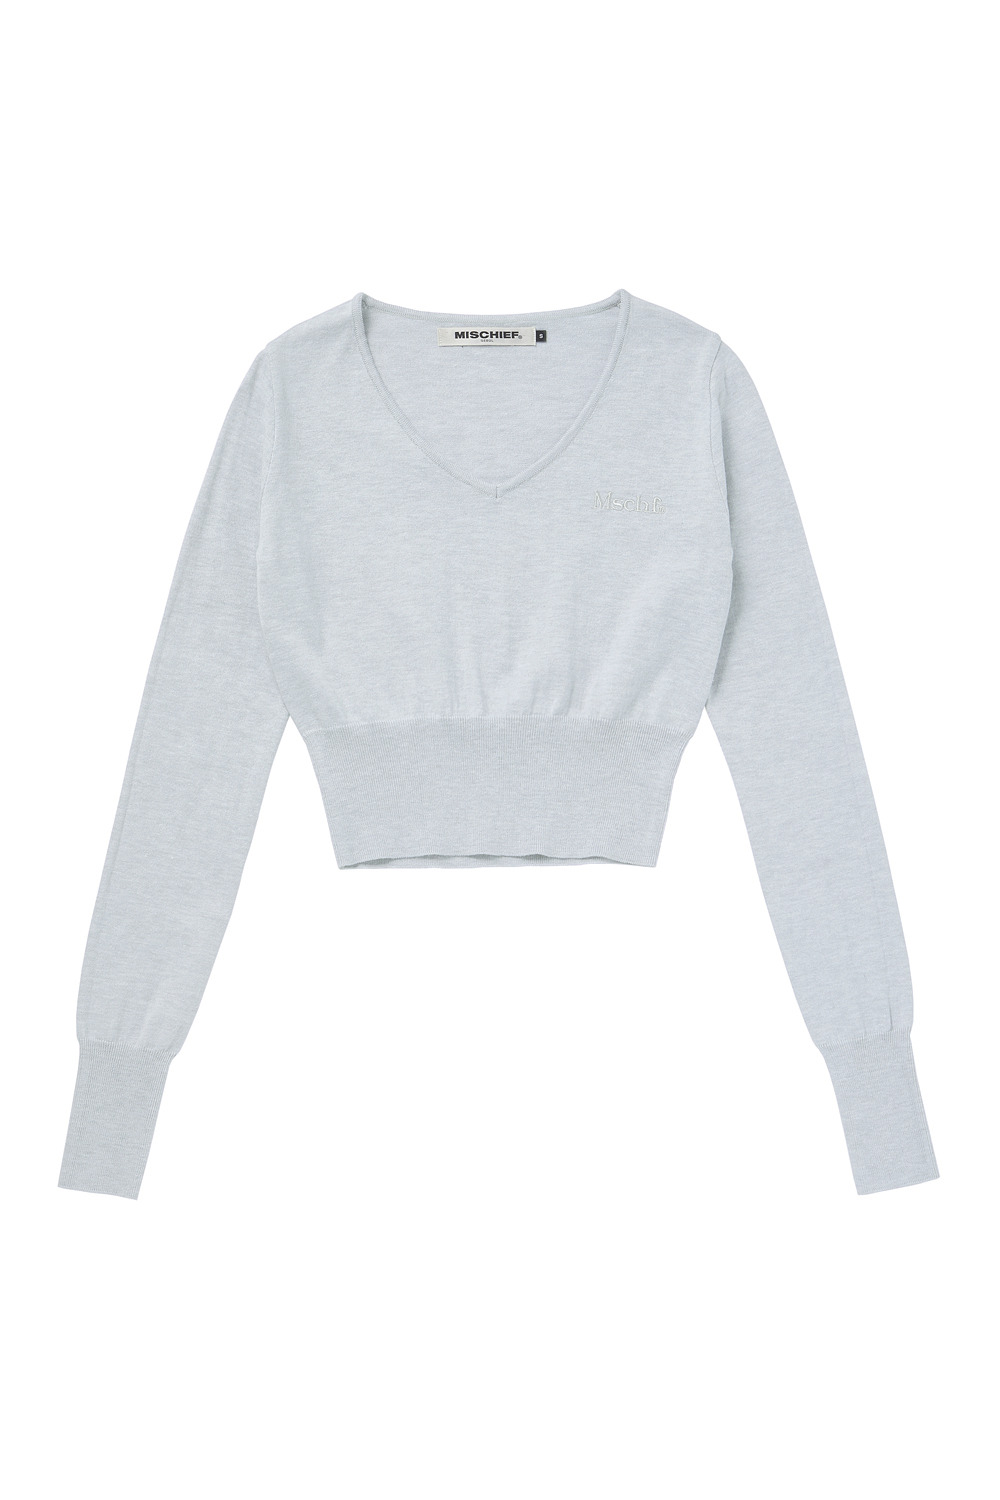 CROPPED KNIT_white melange